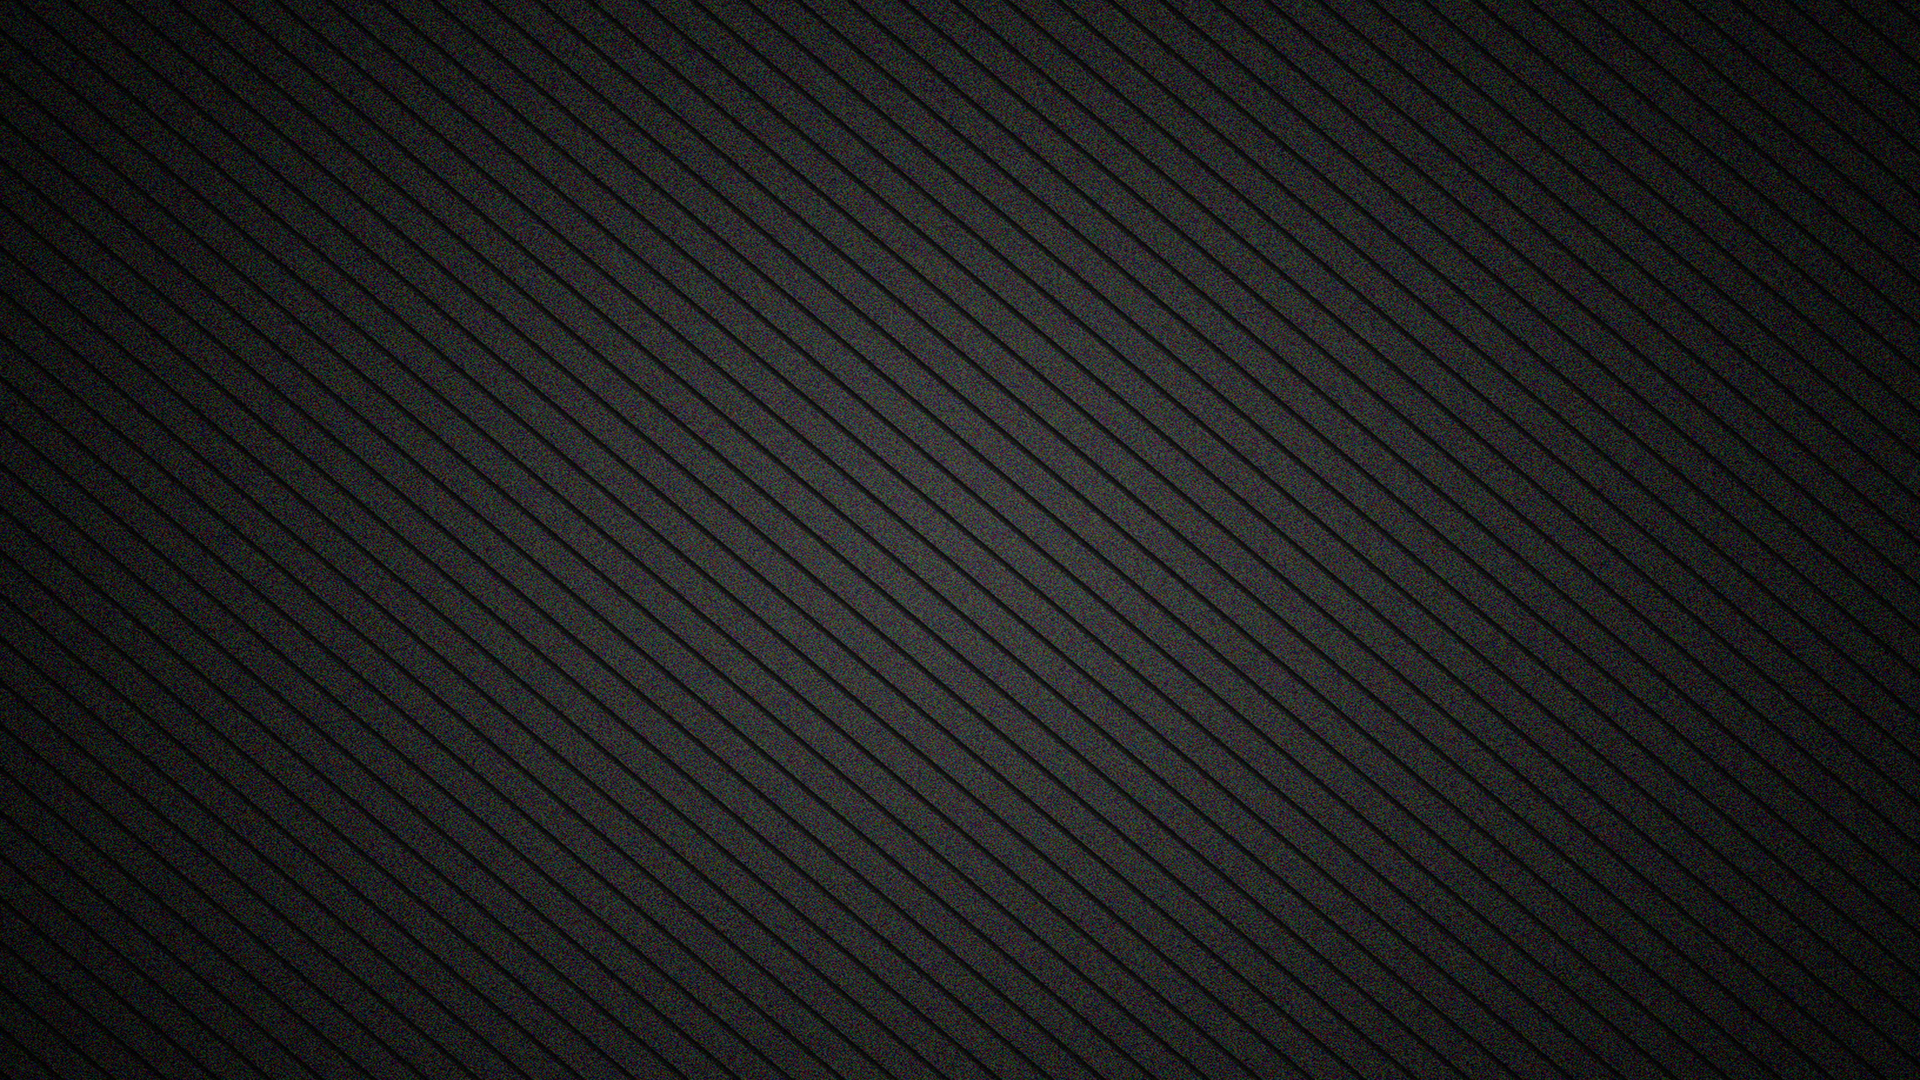 Abstract Line Wallpaper 1920×1080